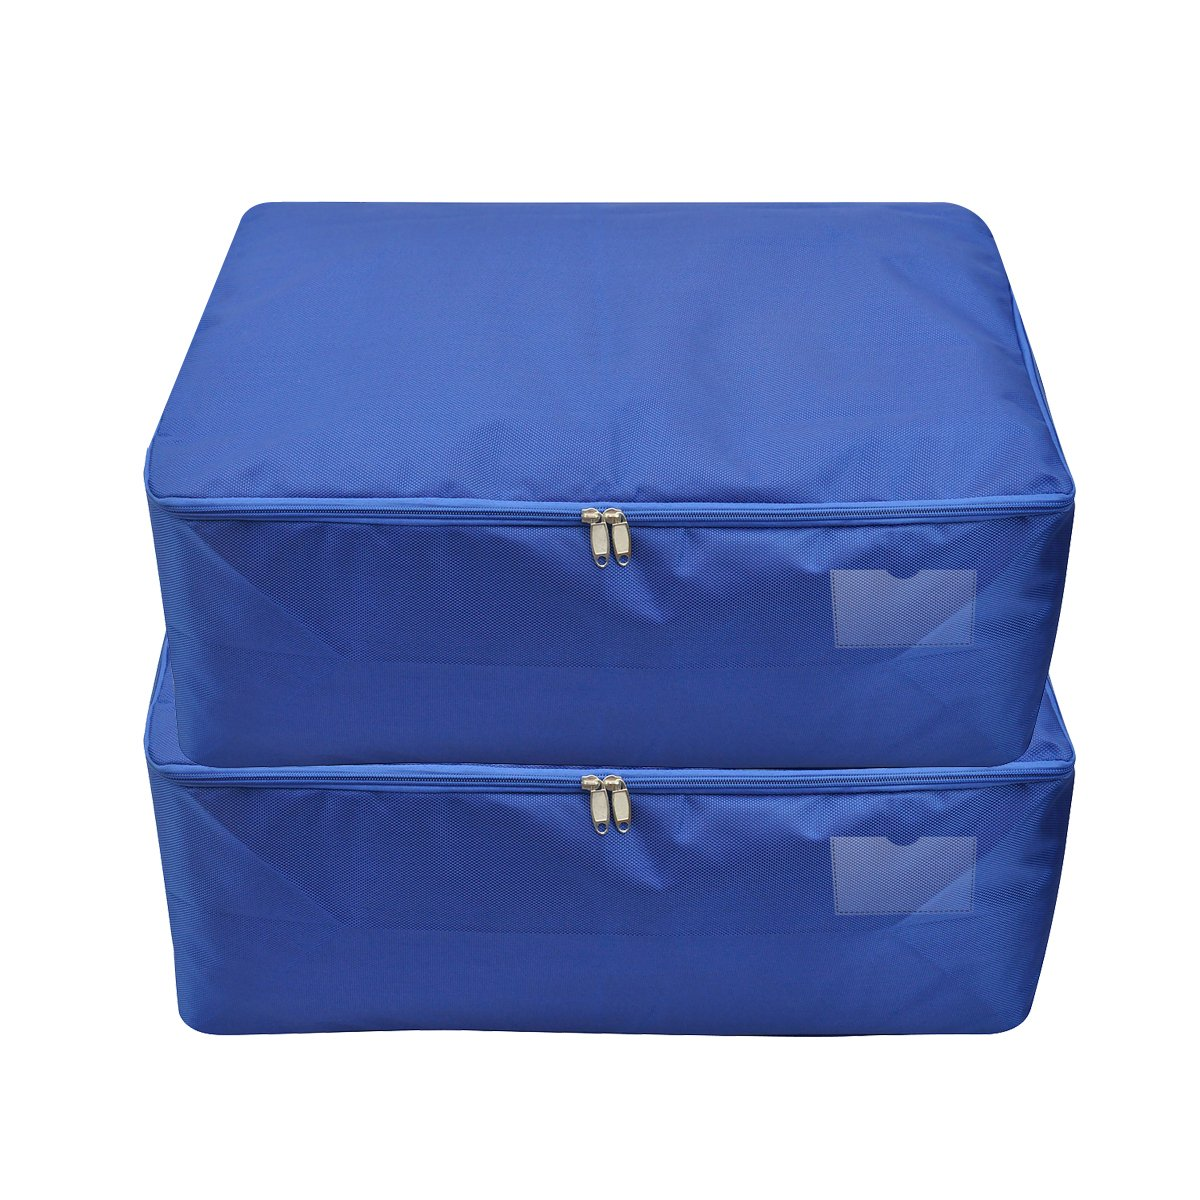 iwill CREATE PRO Travel Clothes Storage Bag, College Dorm Room Storage Container, Royal Blue, 2PCS